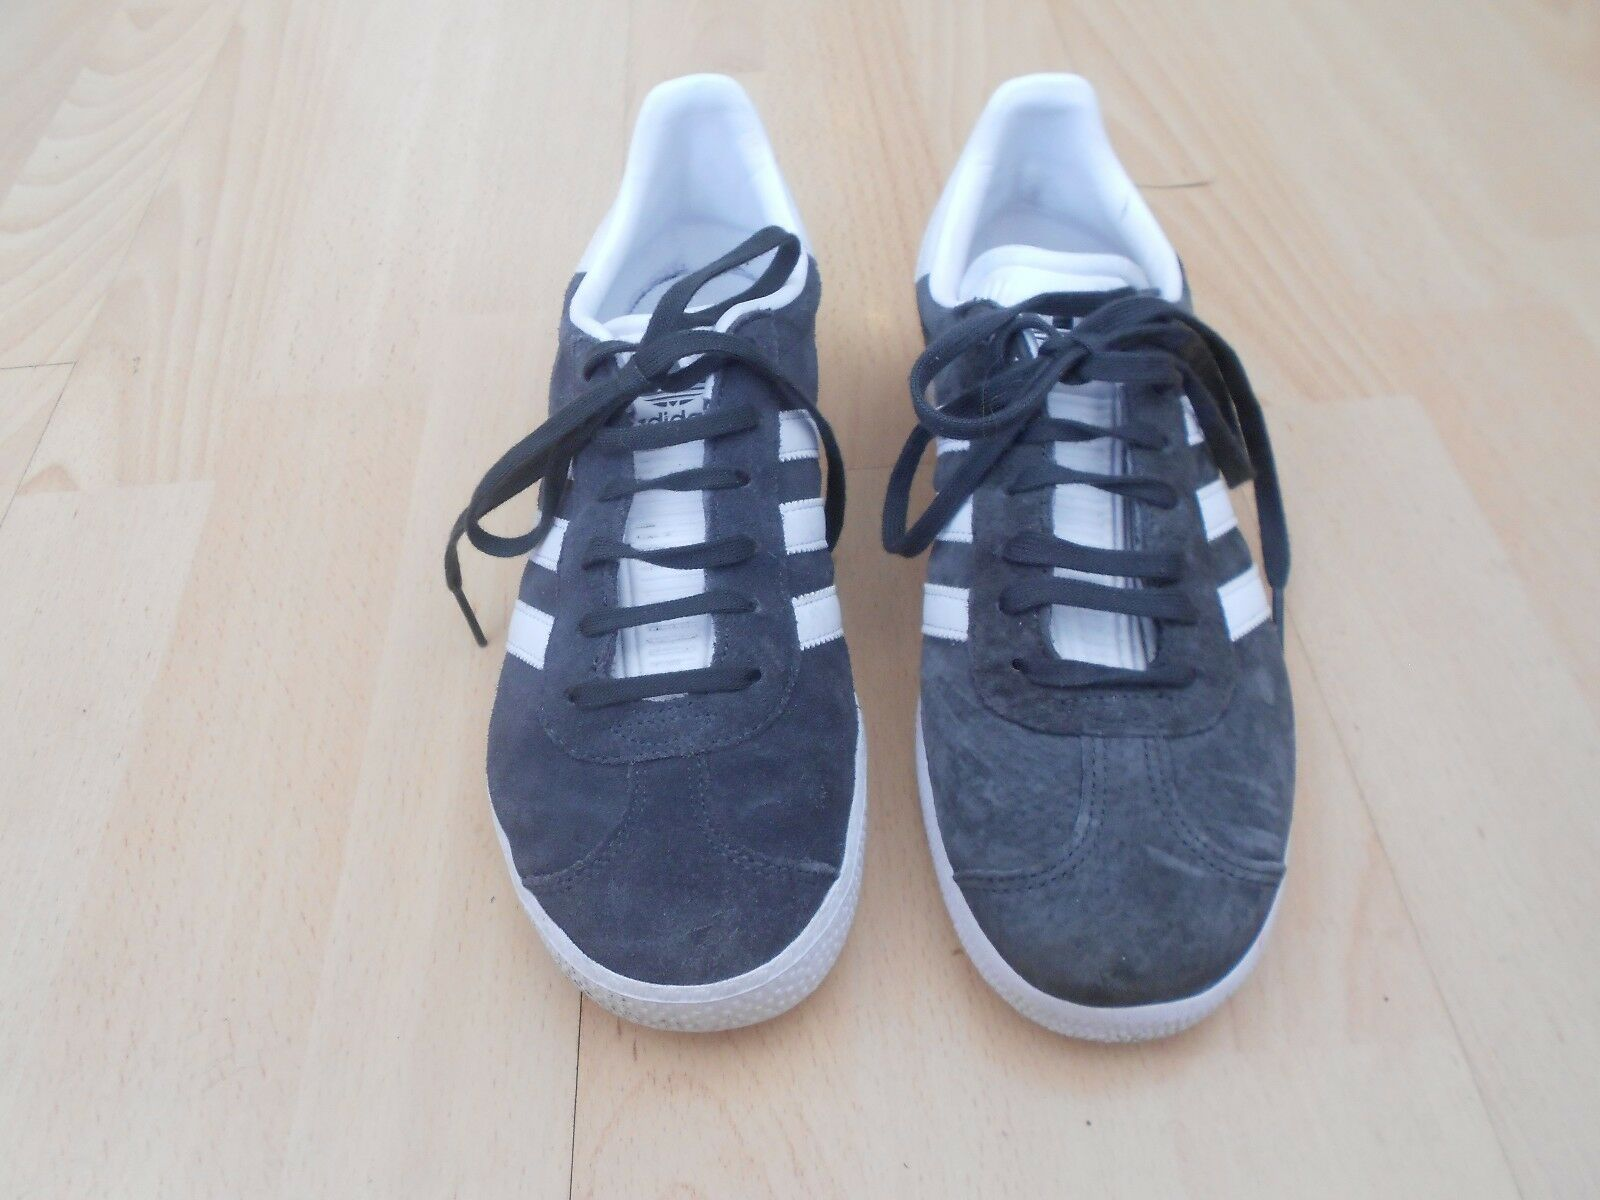 ADIDAS GAZELLE  TRAINERS UK SIZE 5 -  GREY SUEDE - IN GOOD COND